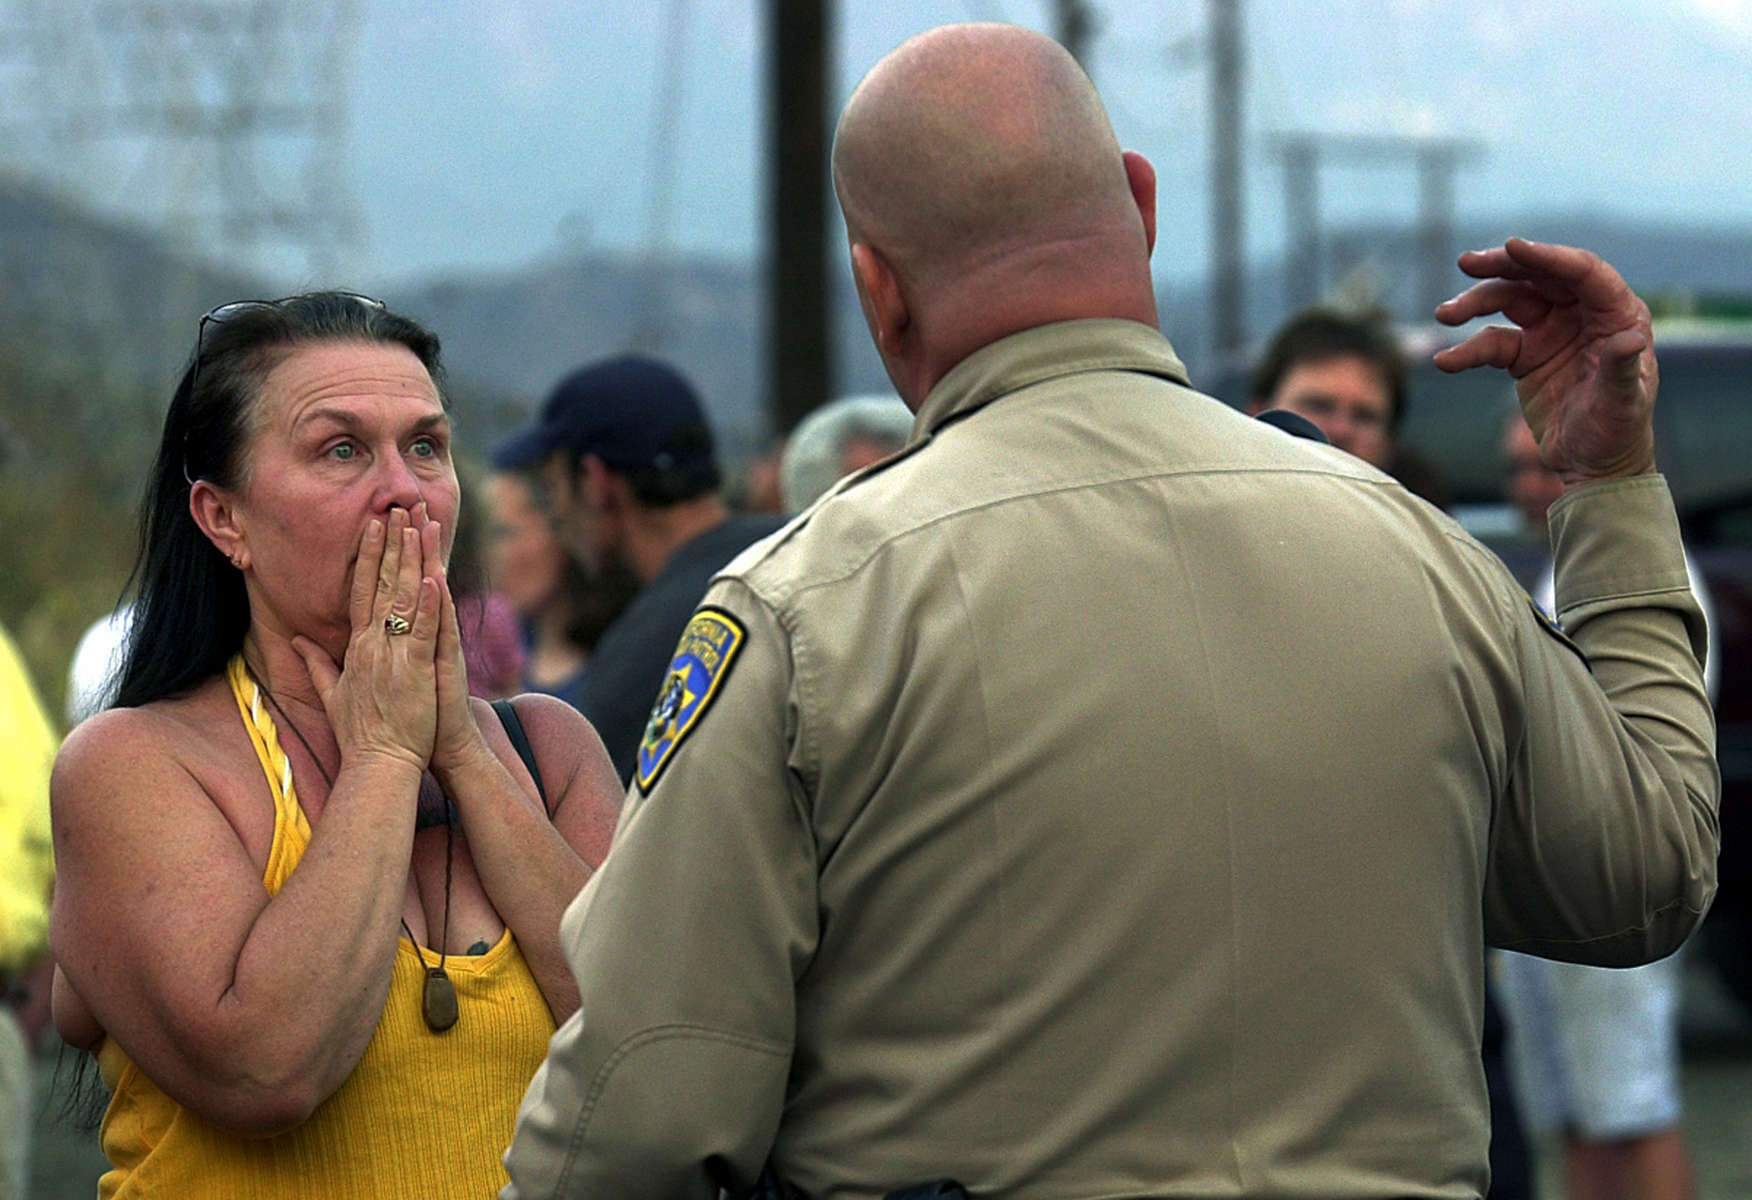 California Highway Patrol Officer C.A. Dosstells Terria Robertson that she can't go back to her home on Sycamore Drive because the Grand Prix Fire is burning in Lytle Creek, Calif. (The Press-Enterprise/ Mark Zaleski)